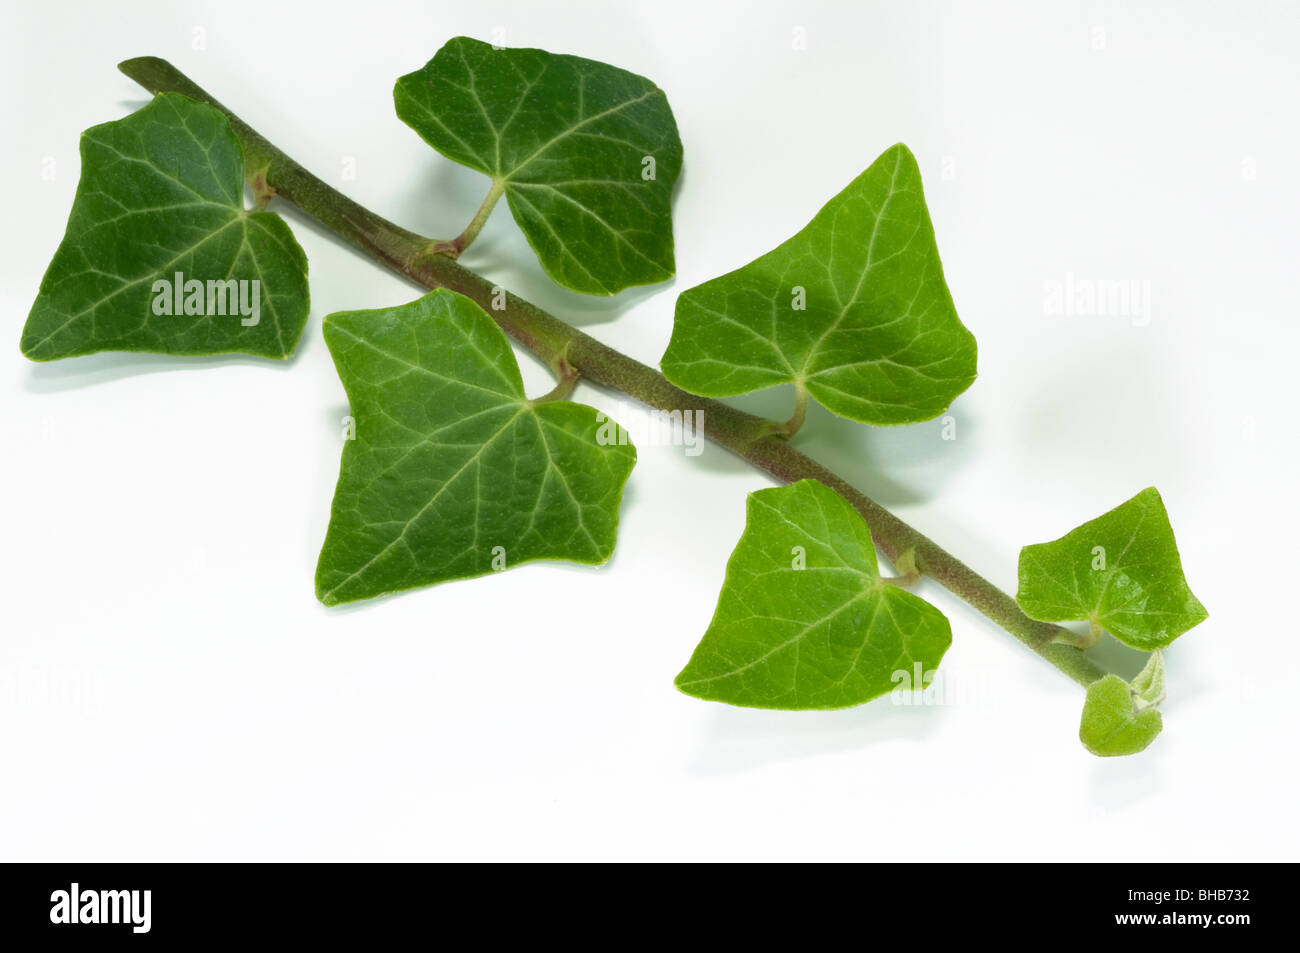 Common Ivy, English Ivy (Hedera helix), tendril, studio picture. - Stock Image